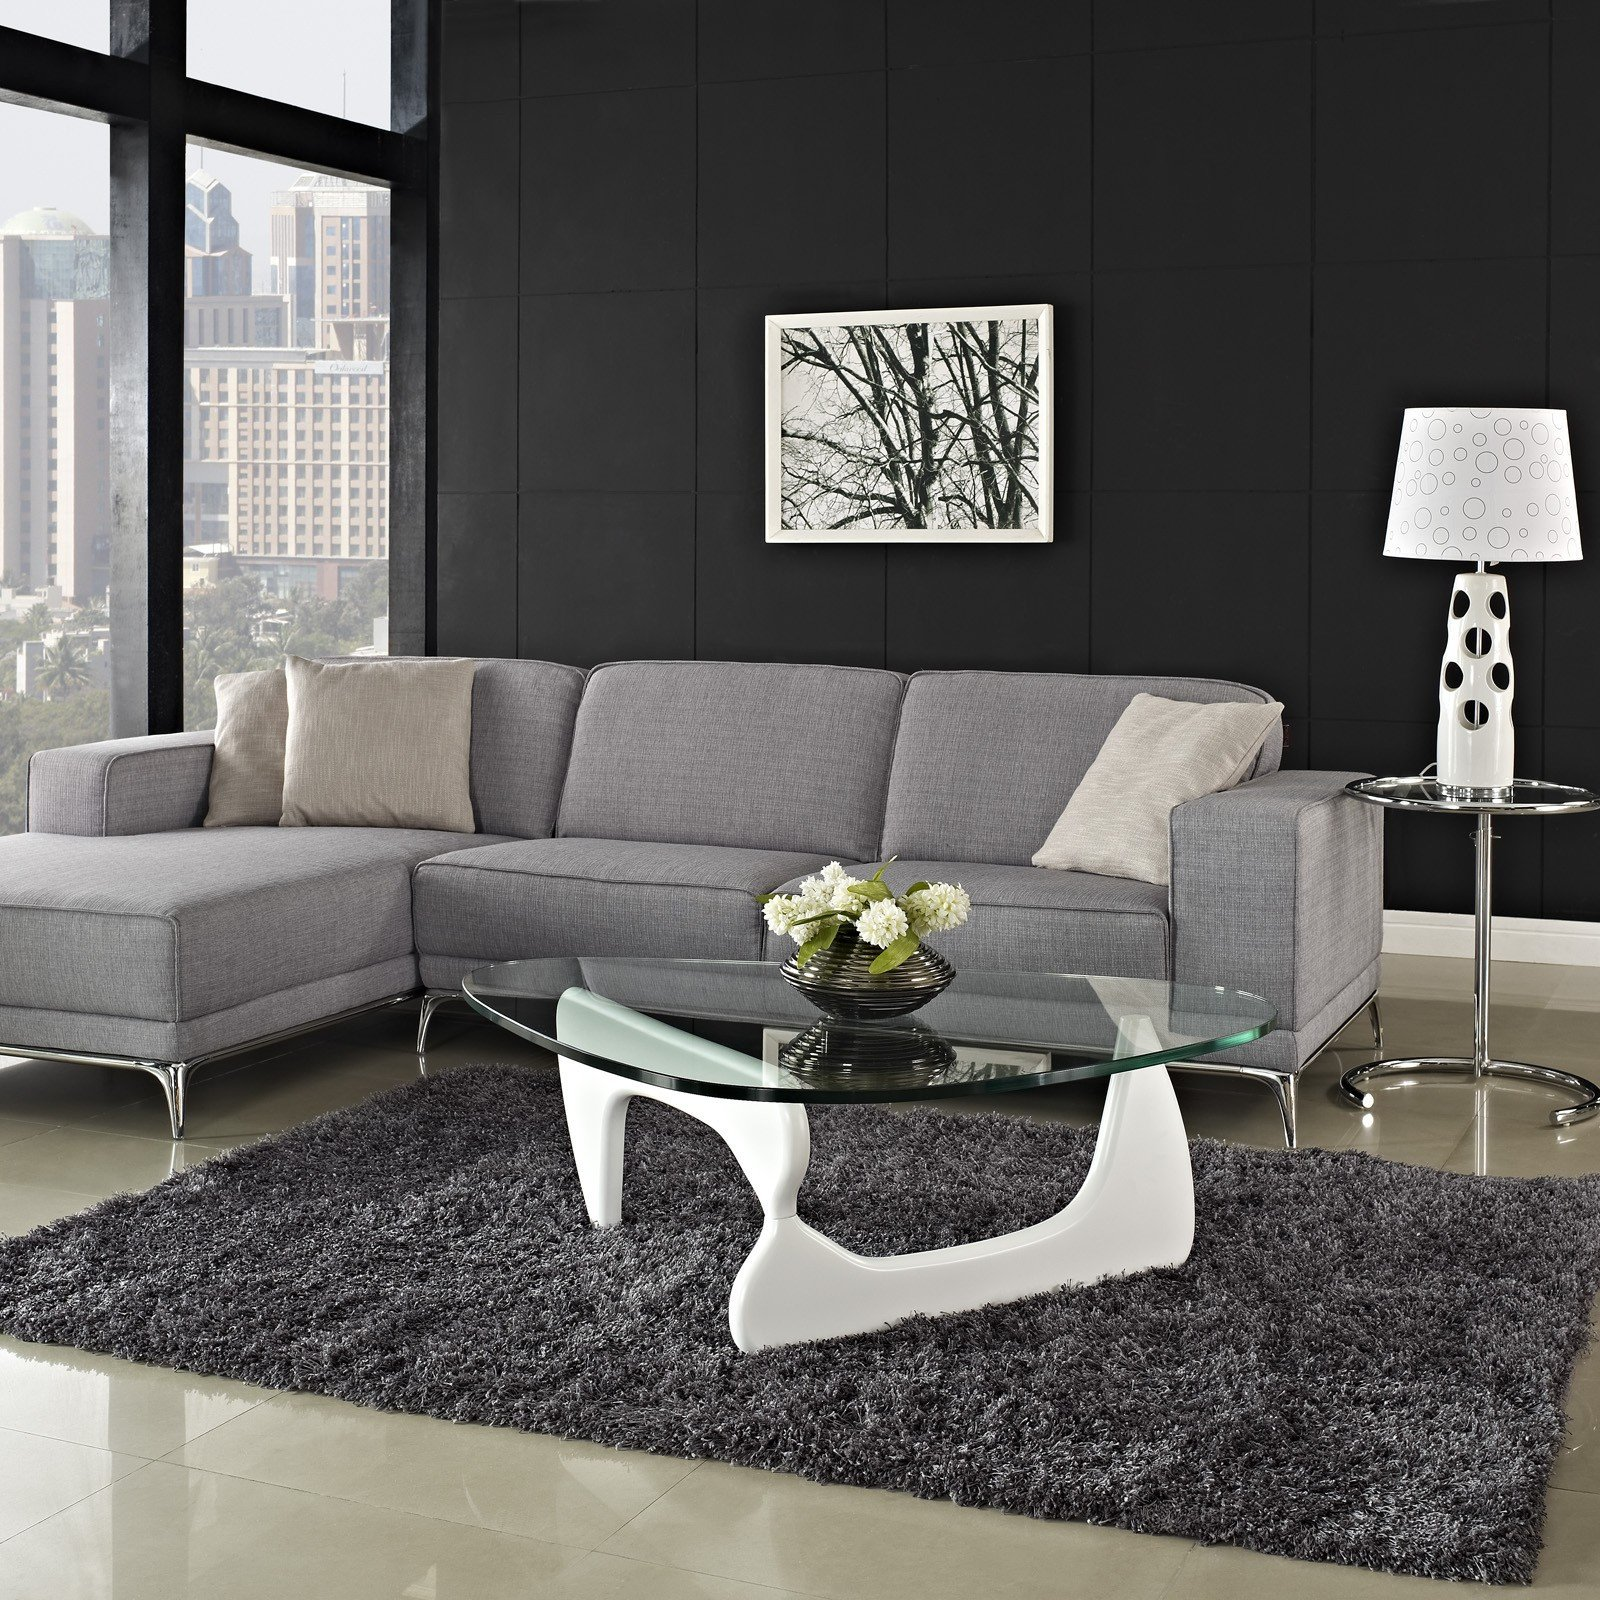 Contemporary Living Room Tables Luxury Contemporary Coffee Tables Design for Your Living Room Hgnv